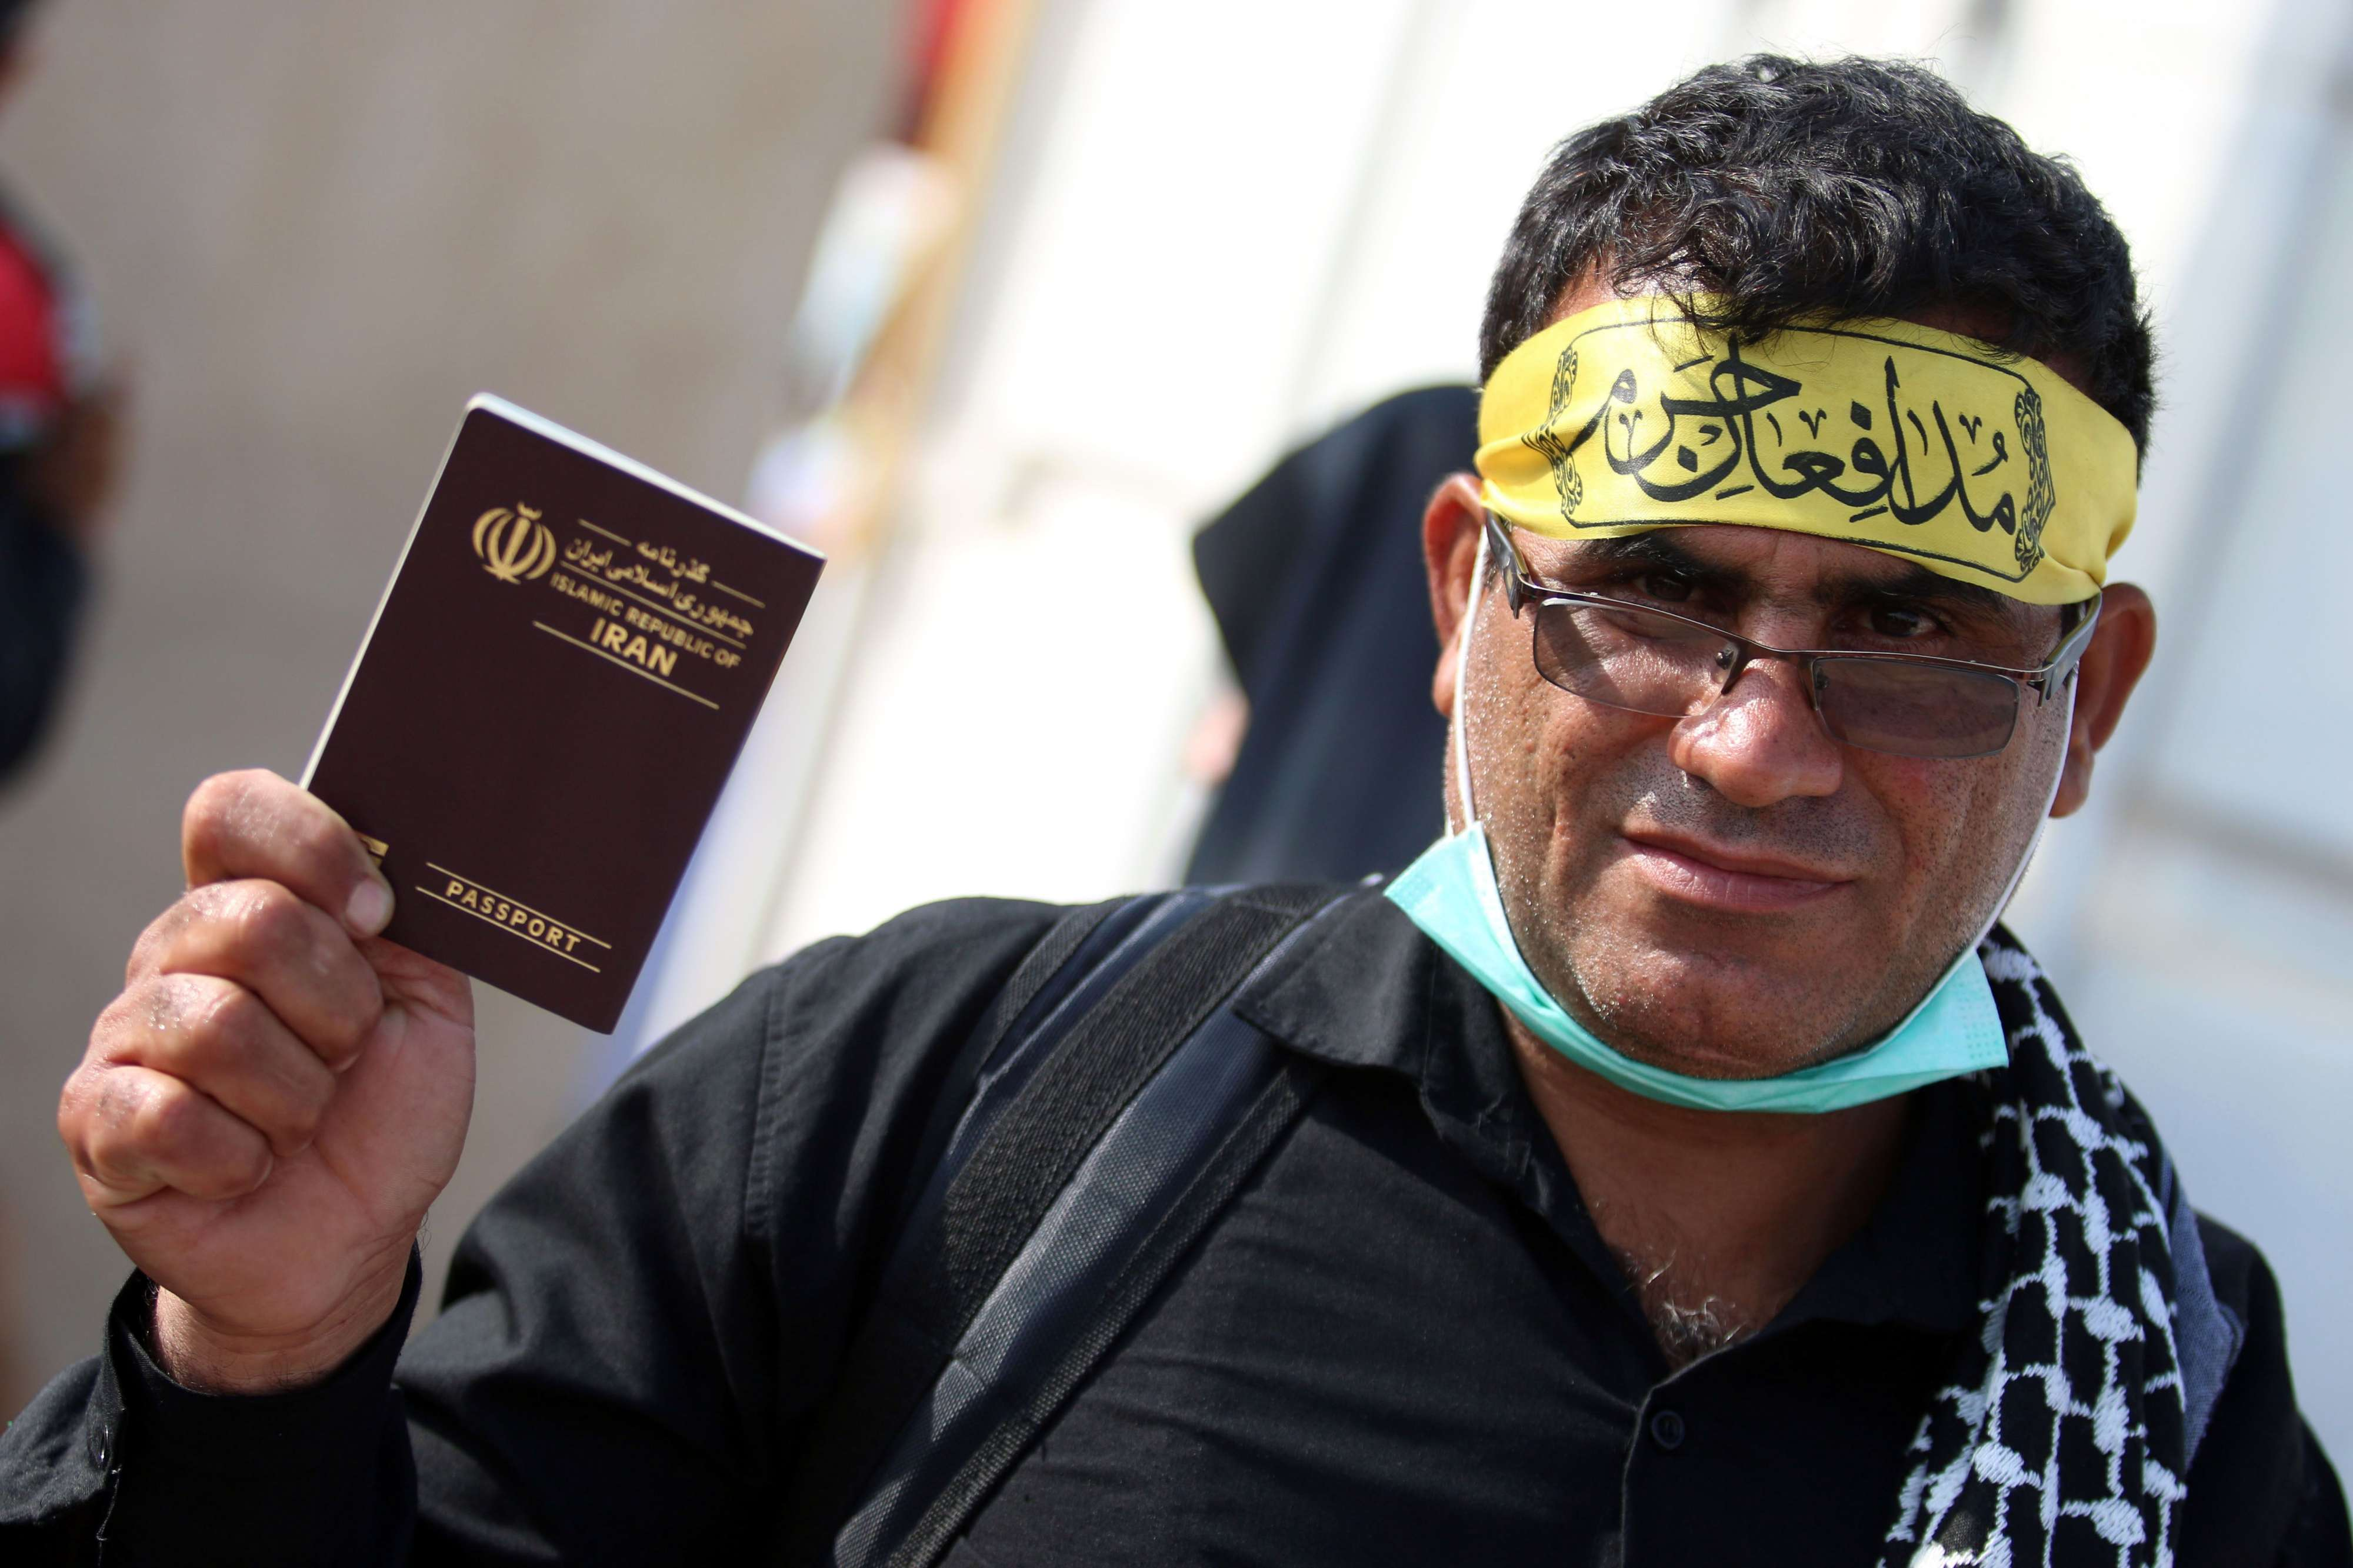 An Iranian pilgrim flashes his passport while passing through a border crossing in the Iraqi city of Basra. (AFP)